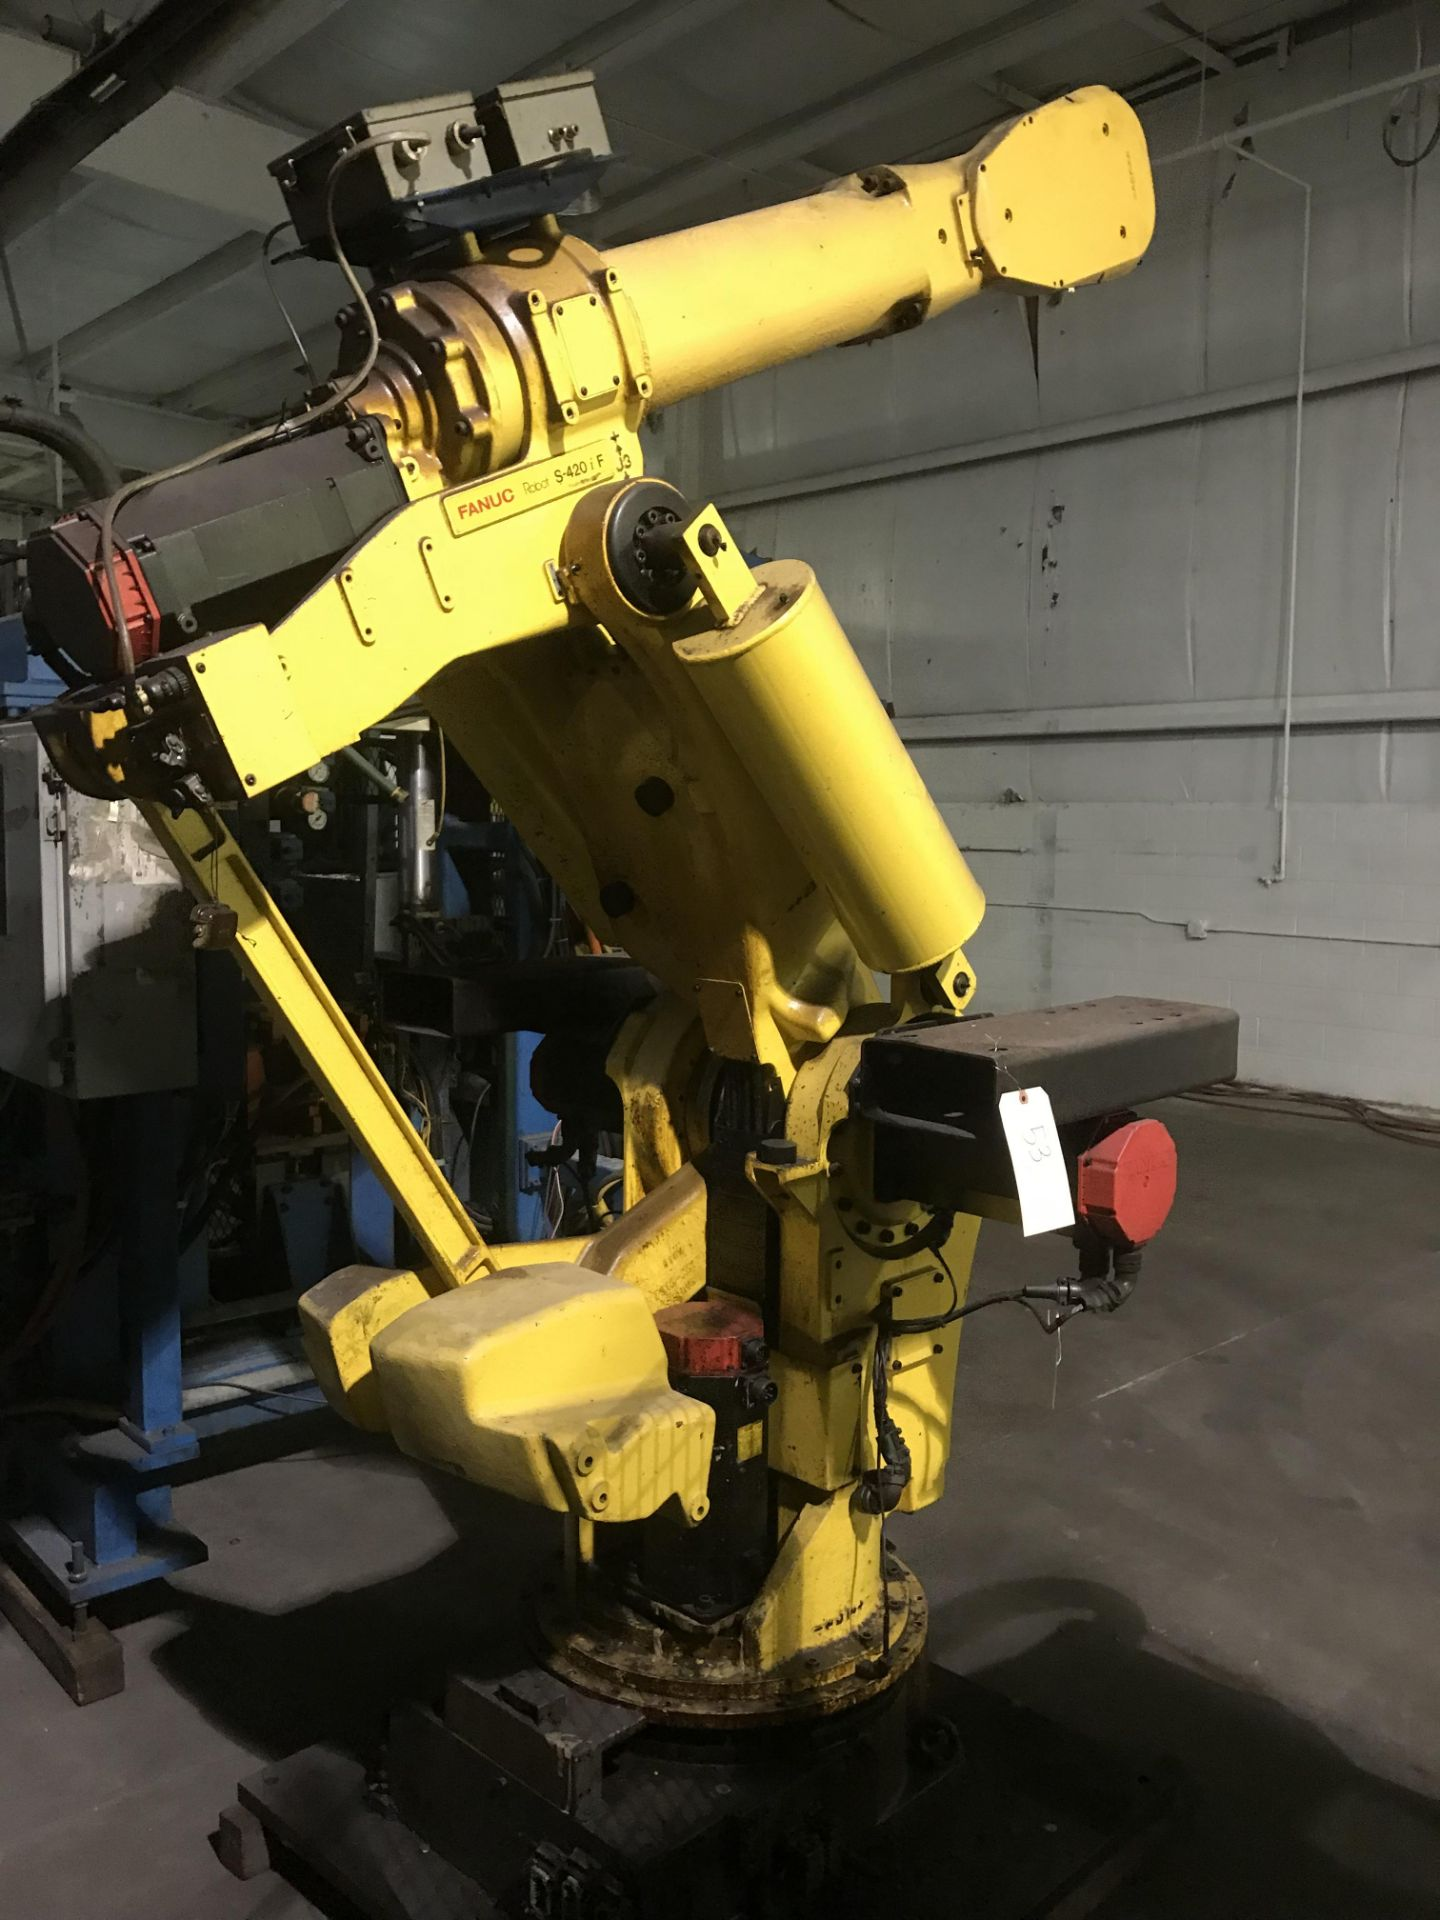 Fanuc Multi Axis Robot - Image 3 of 4